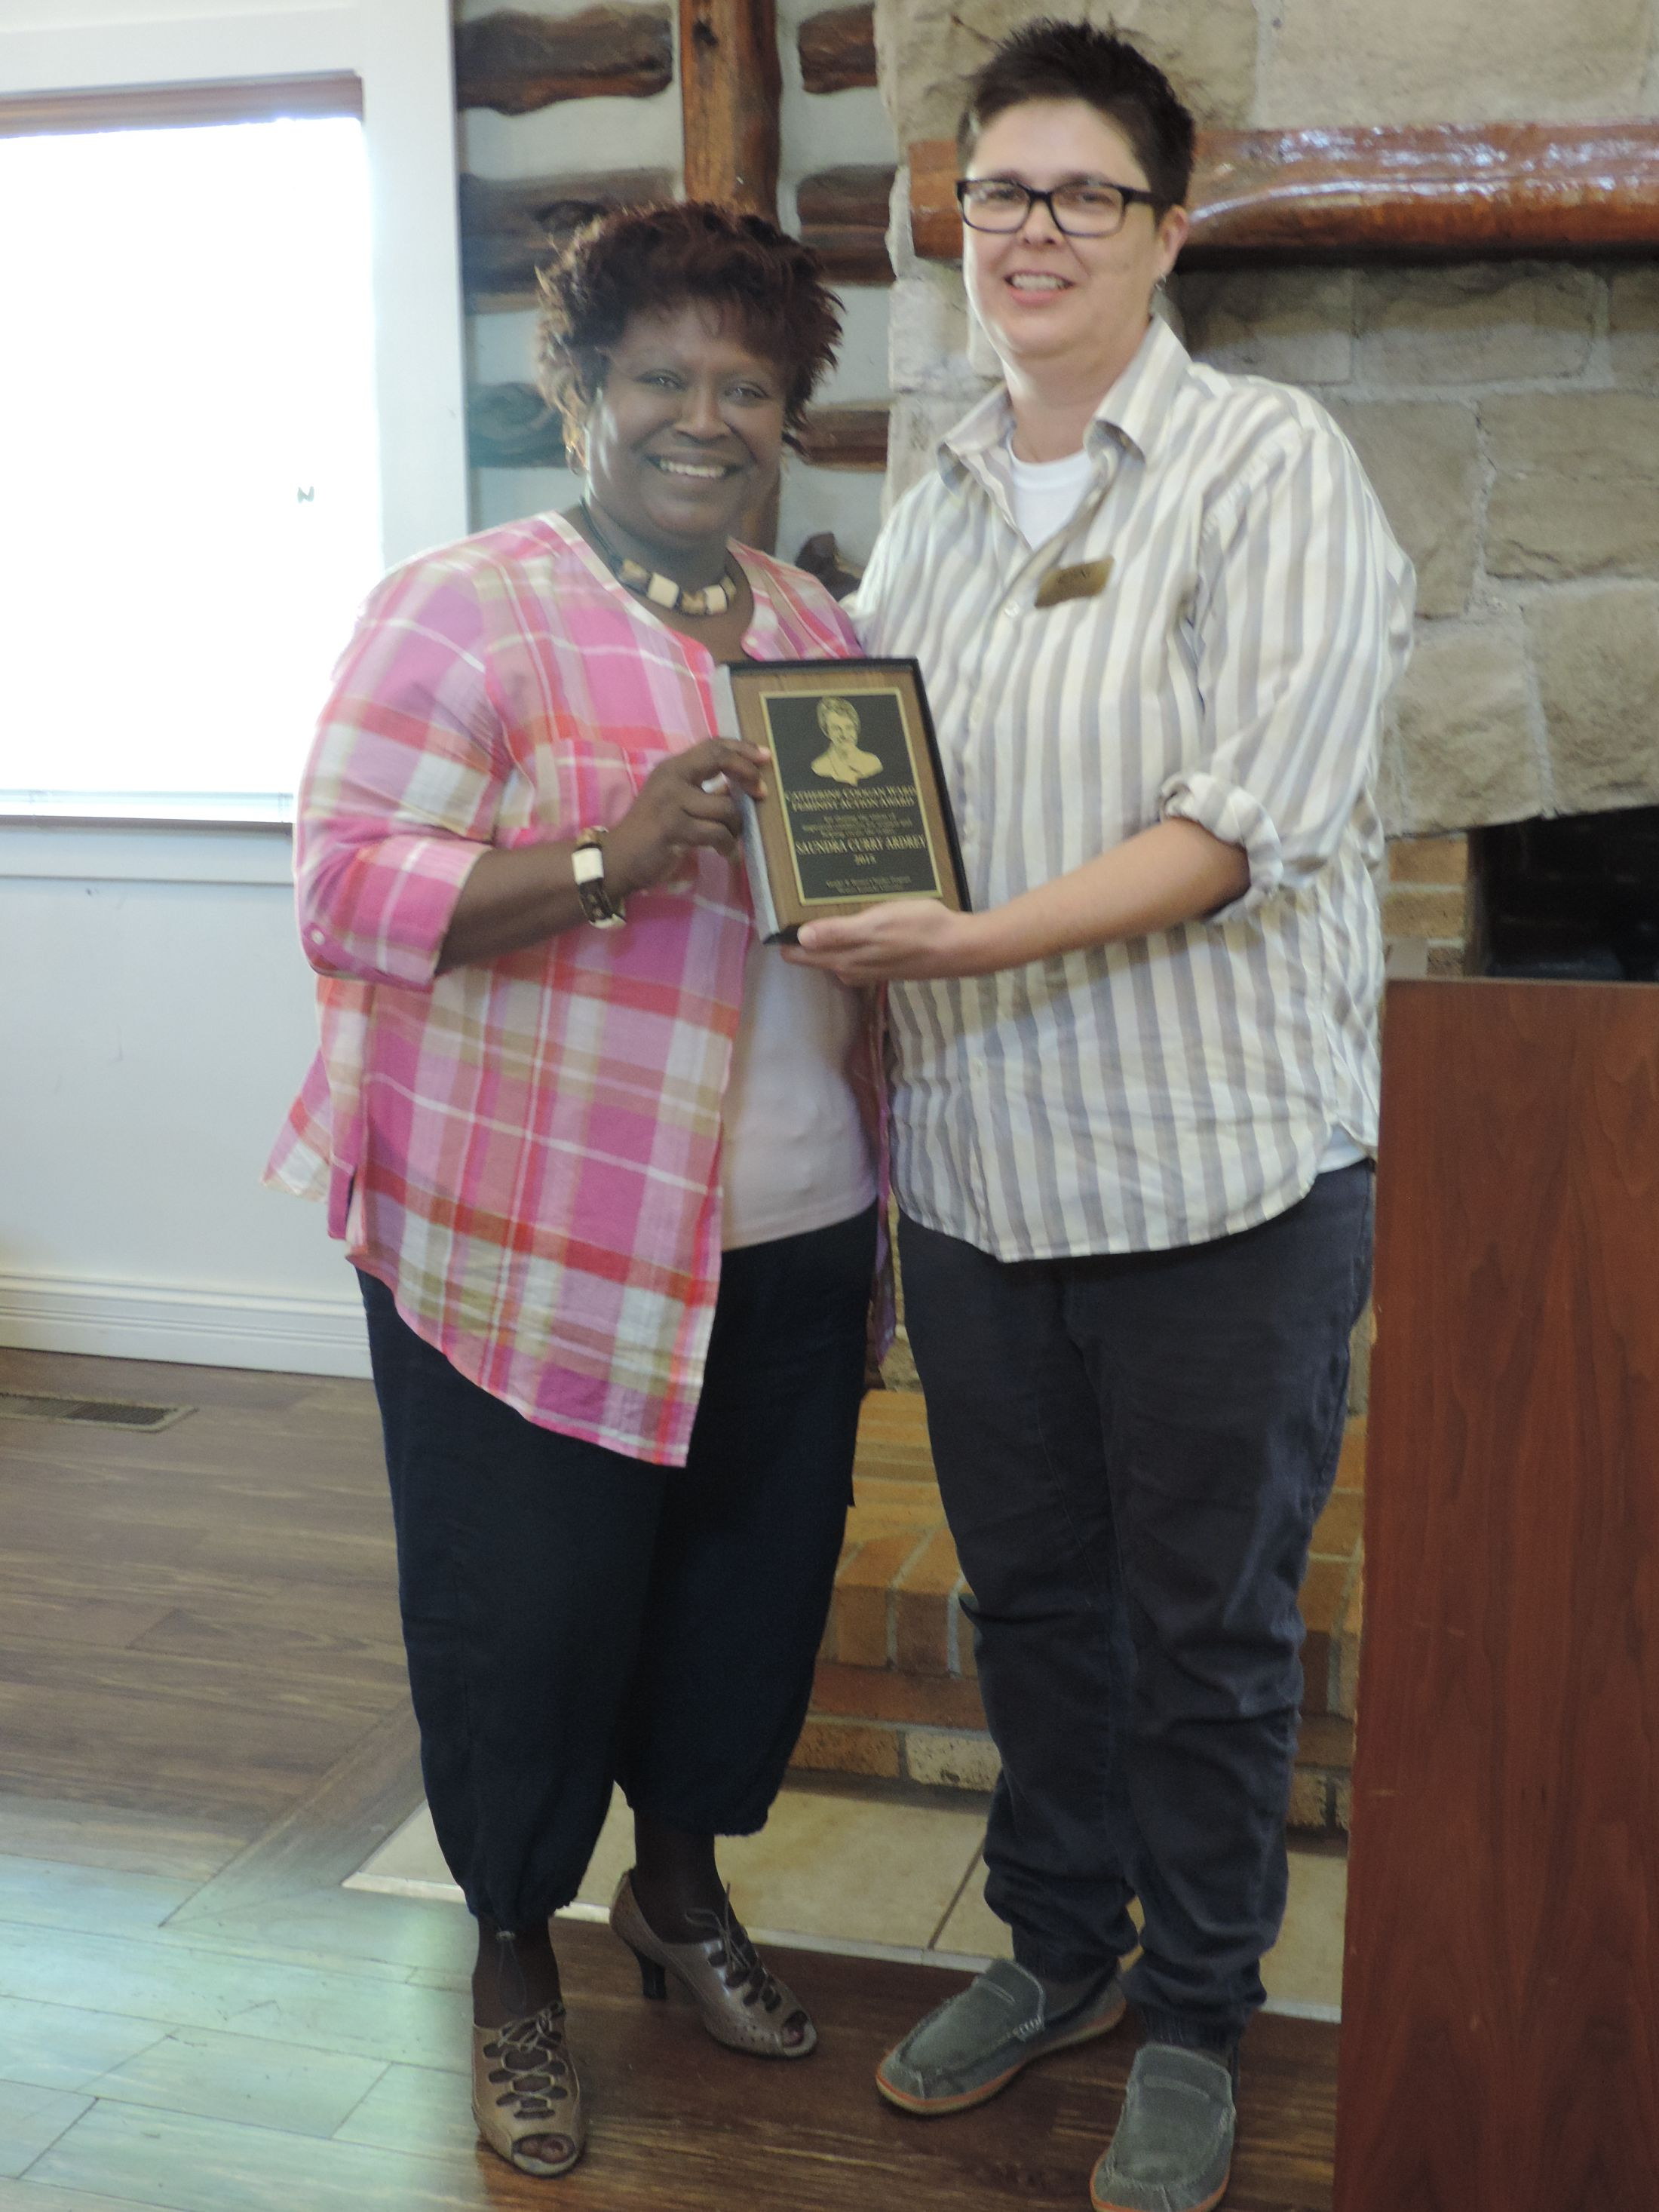 Catherine Ward Coogan Feminist Action Award winner Saundra Curry Ardrey